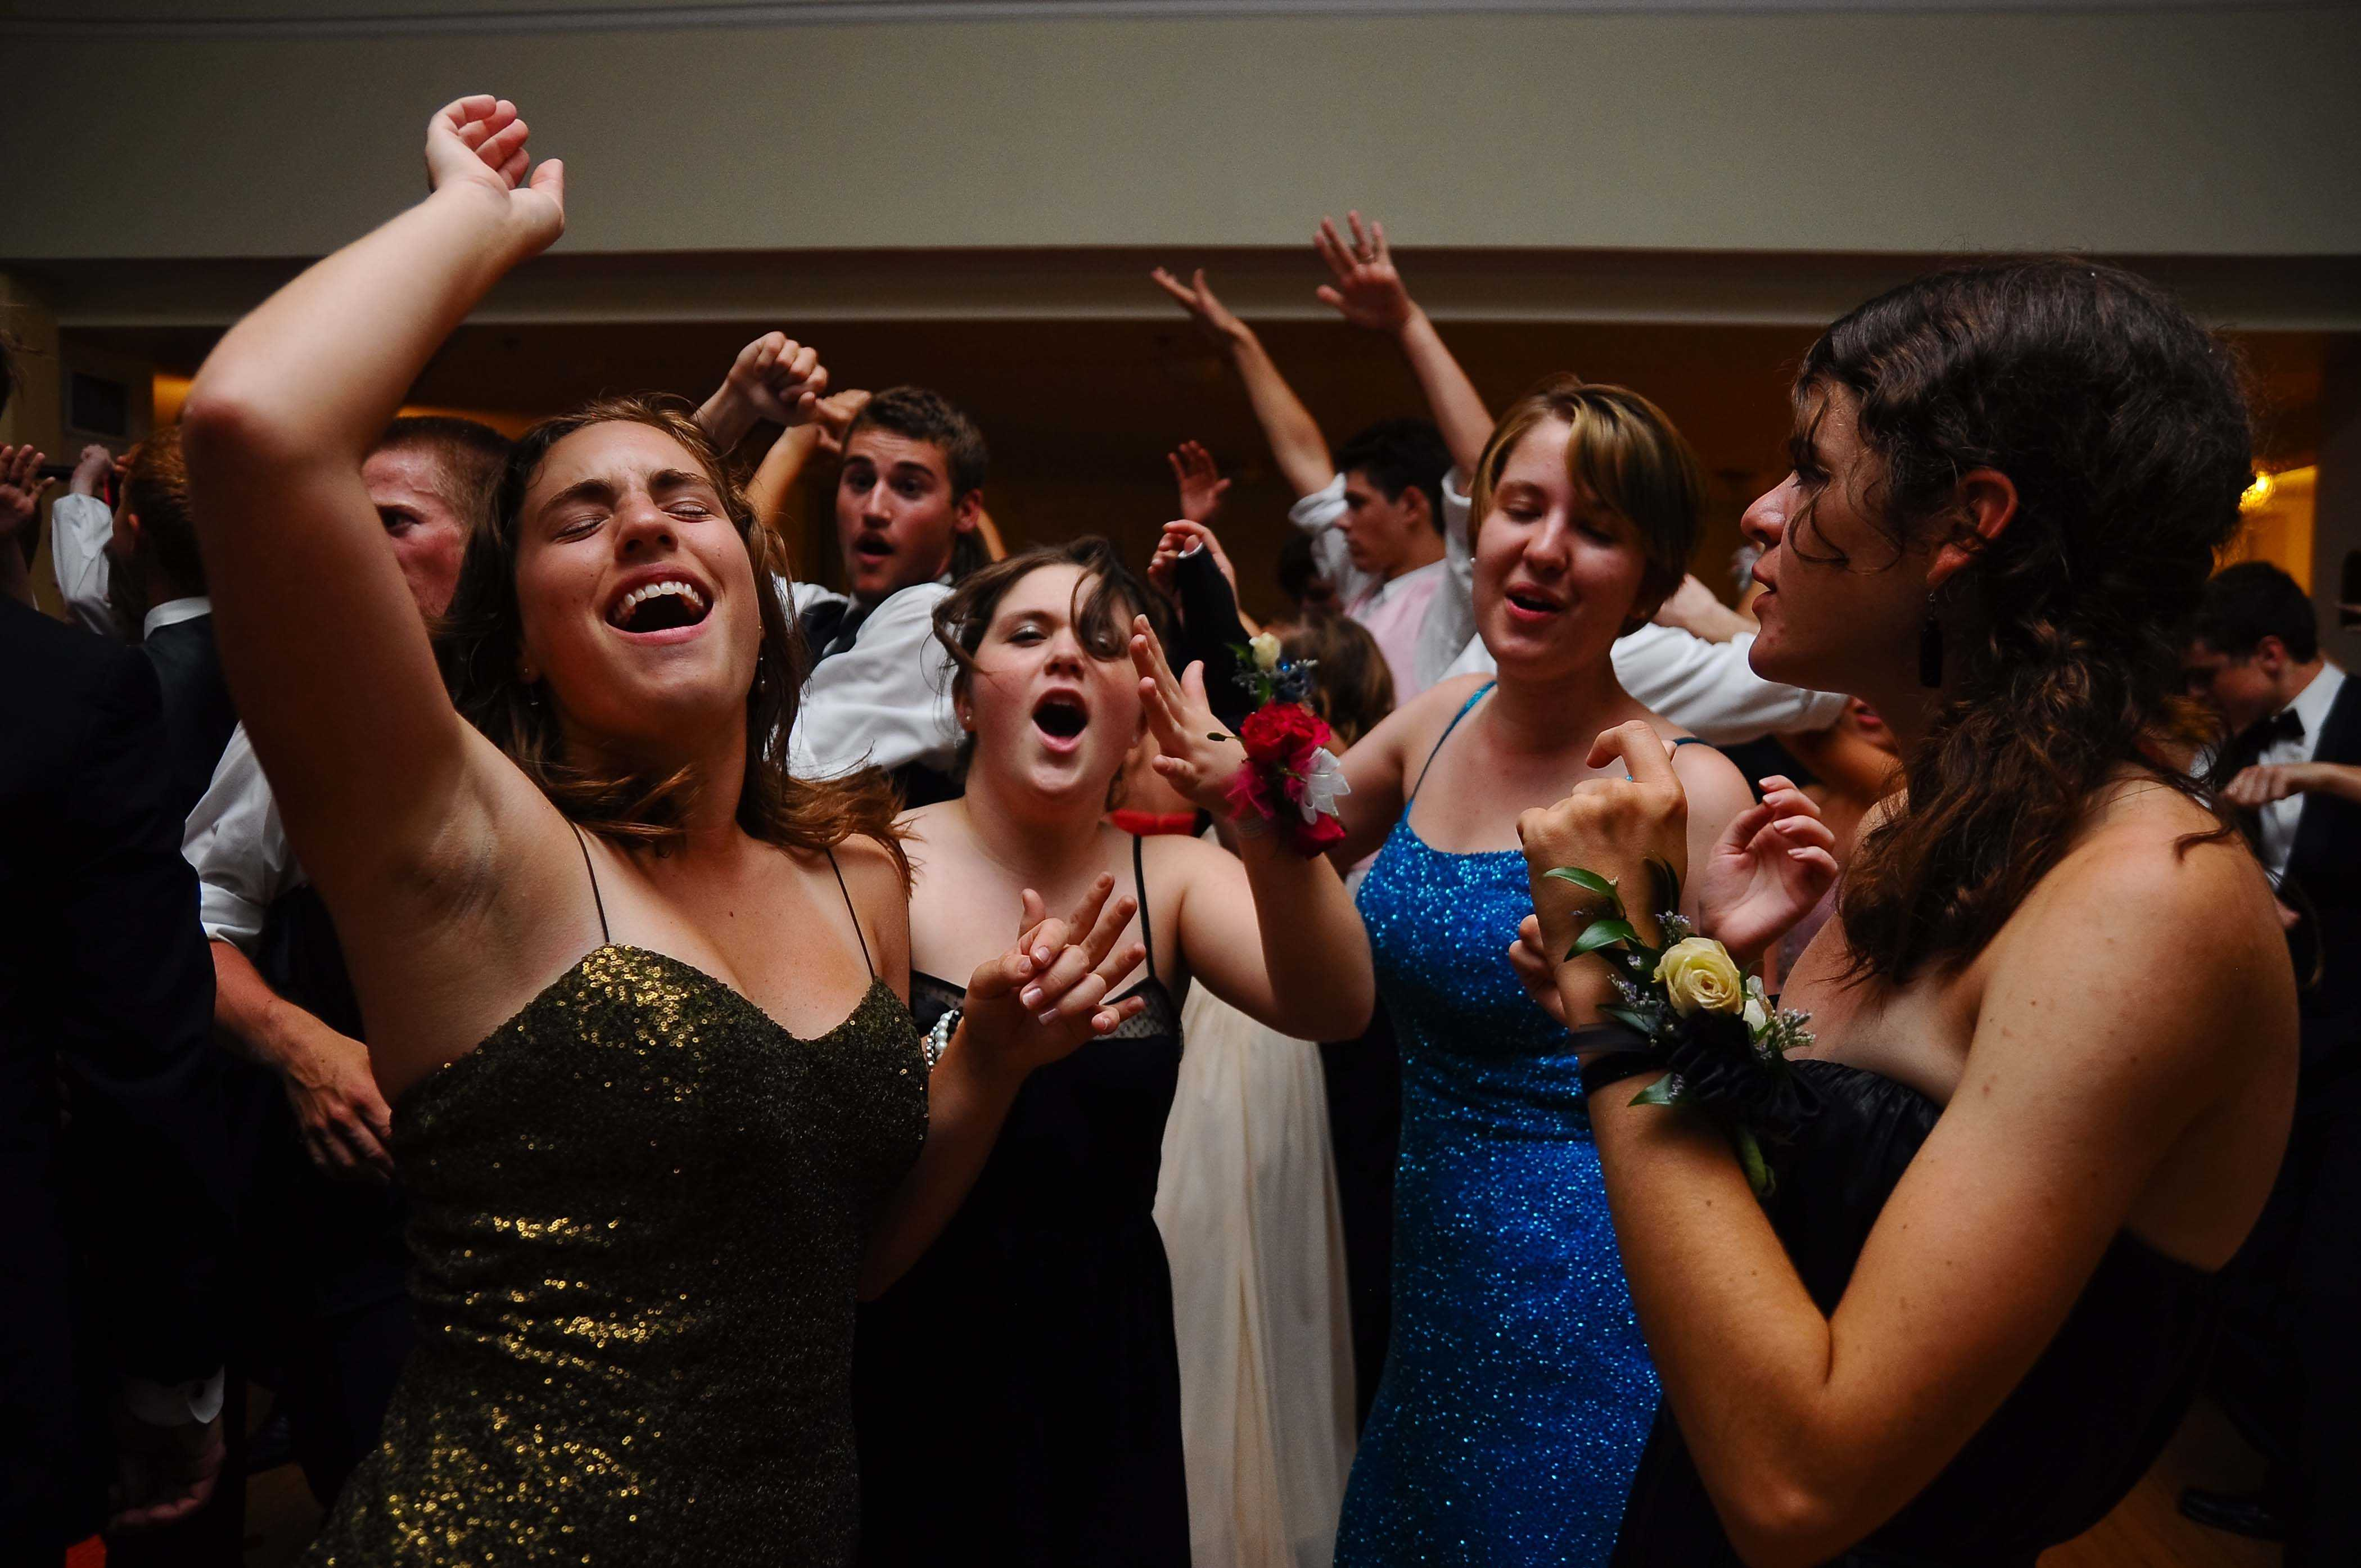 Prom 2012, A night to remember